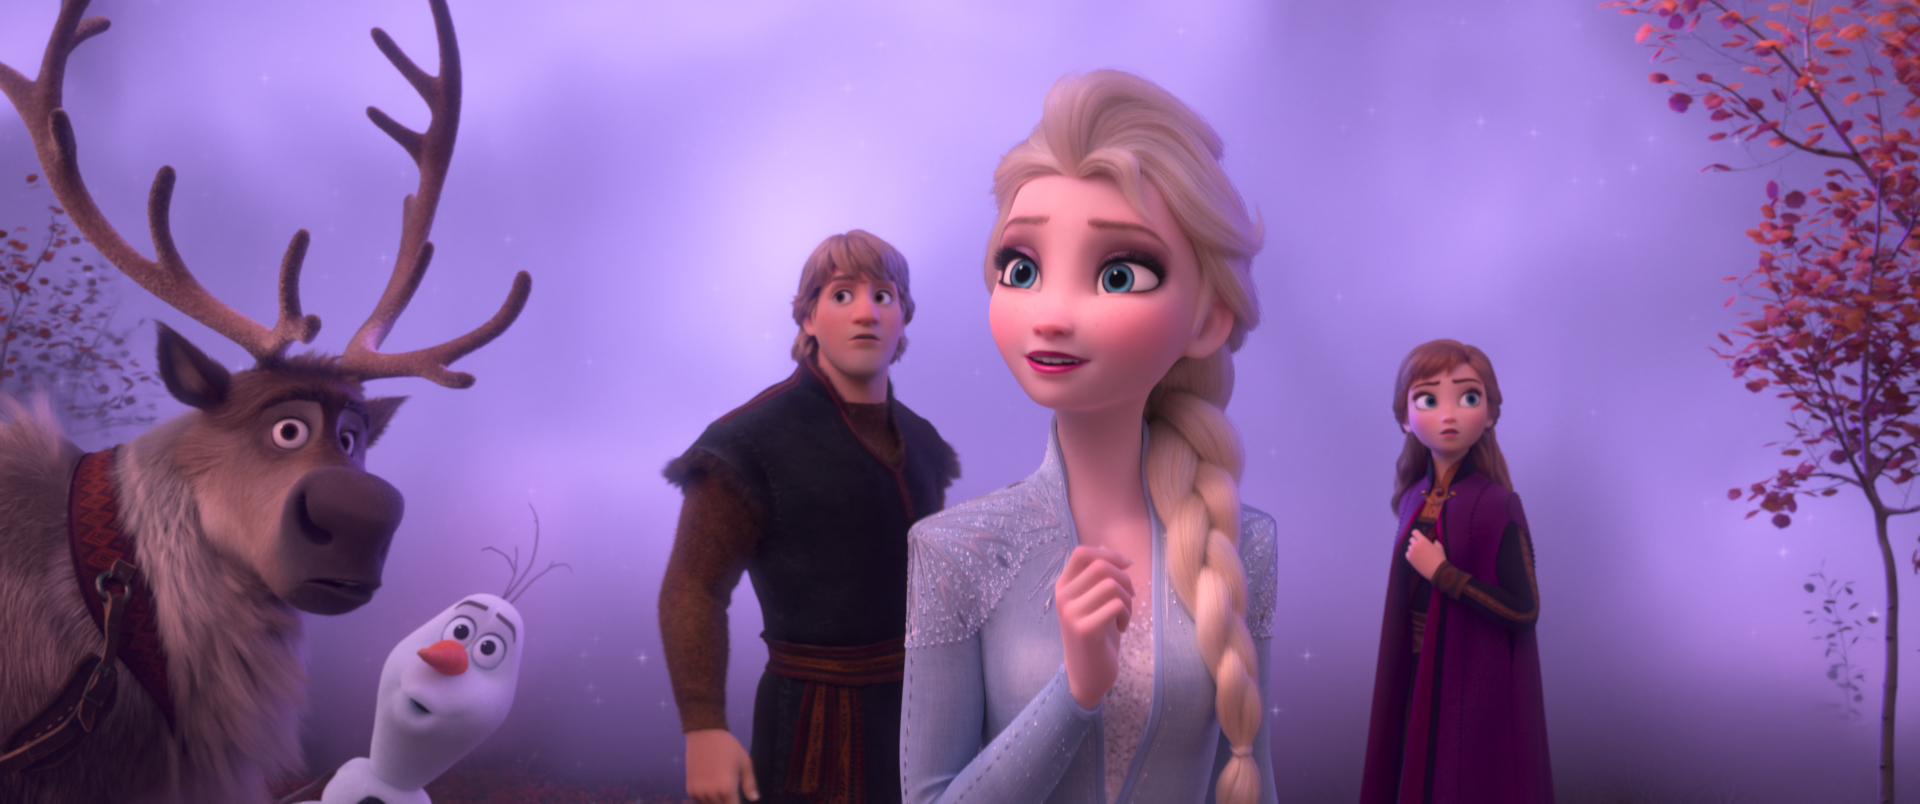 Elsa, Anna, Kristoff, Sven, and Olad surrounded by magical fog